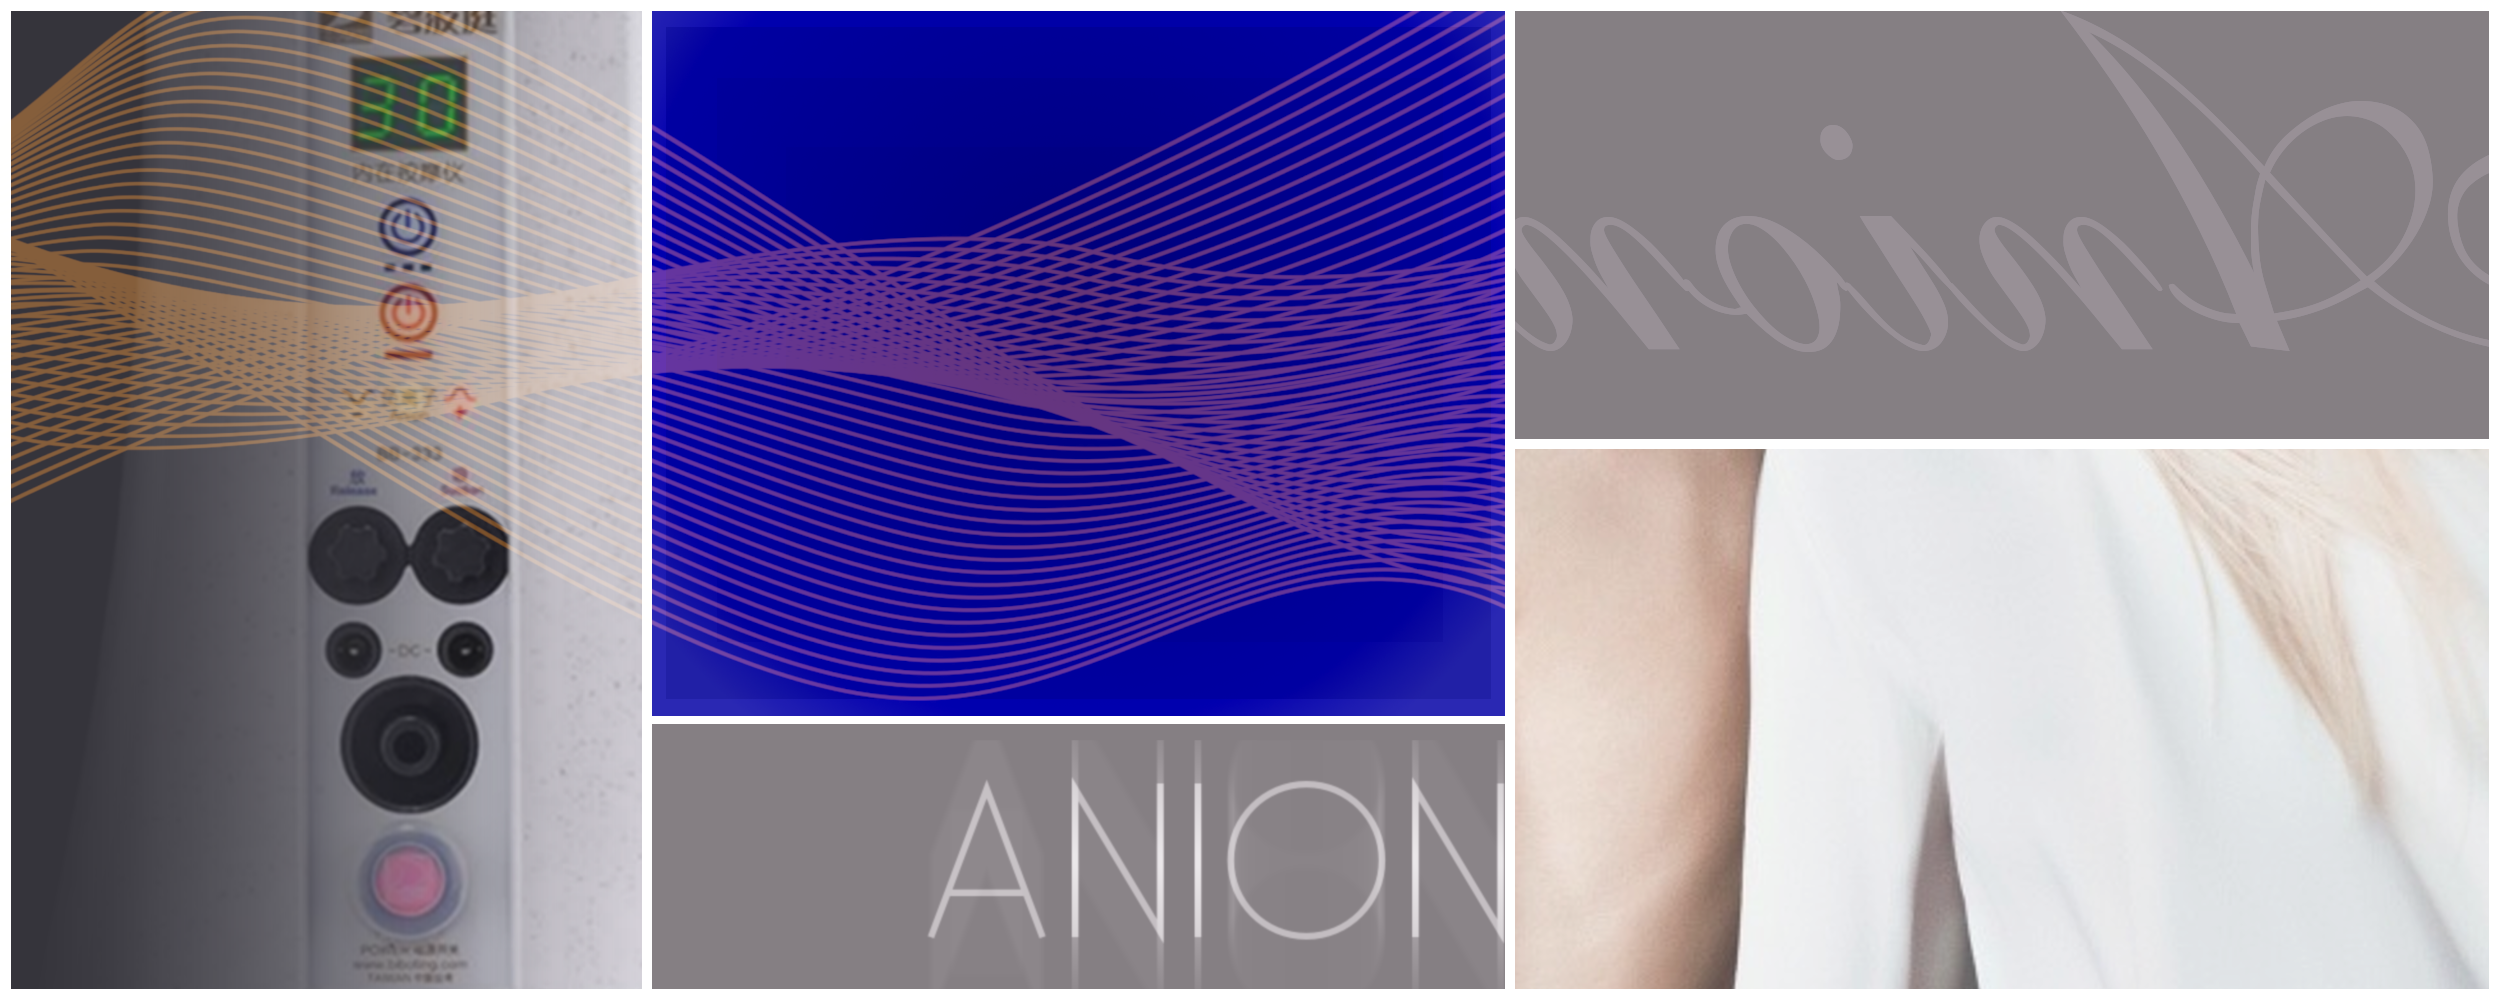 Magnetic cupping massage therapy is one part of the anion therapy process offered by luxury hair plus in nyc